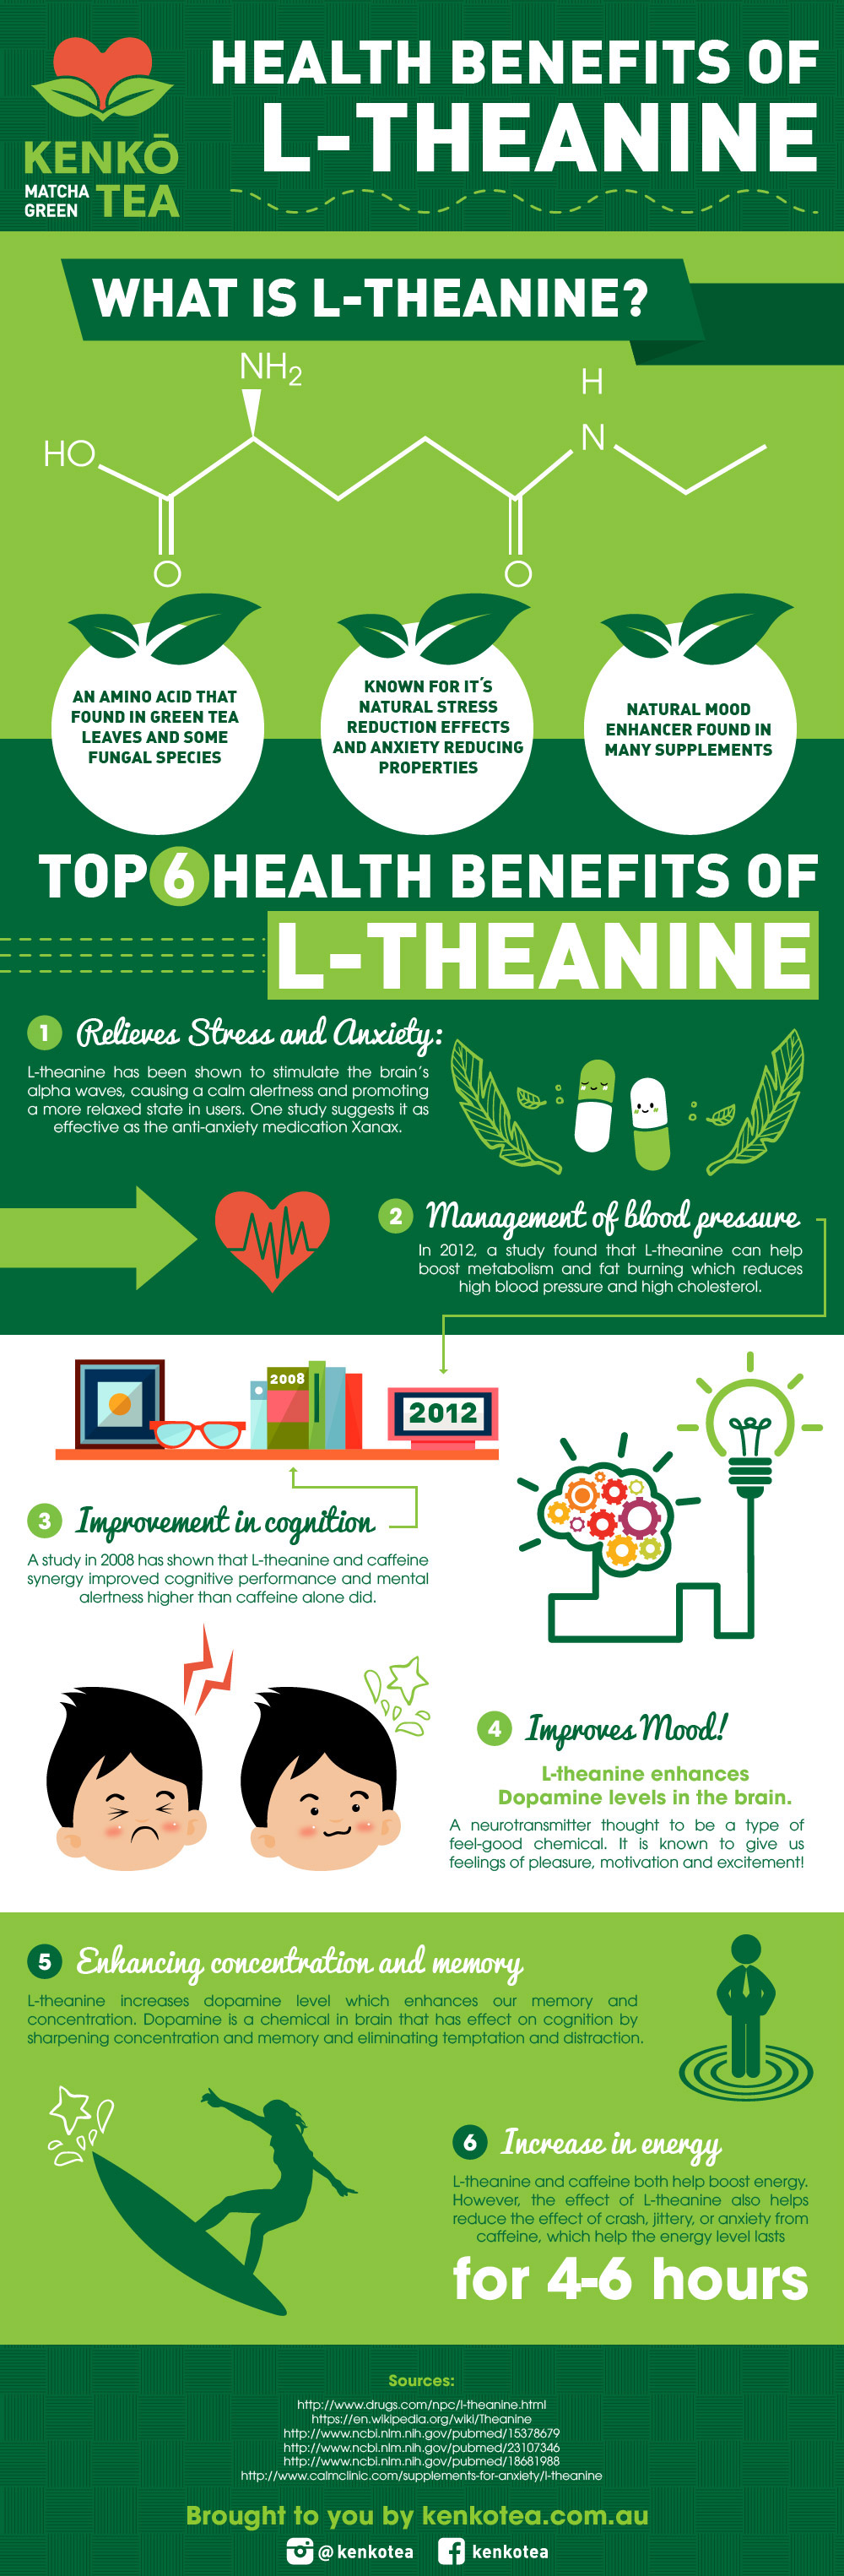 Health Benefits of L-Theanine | Kenko Tea